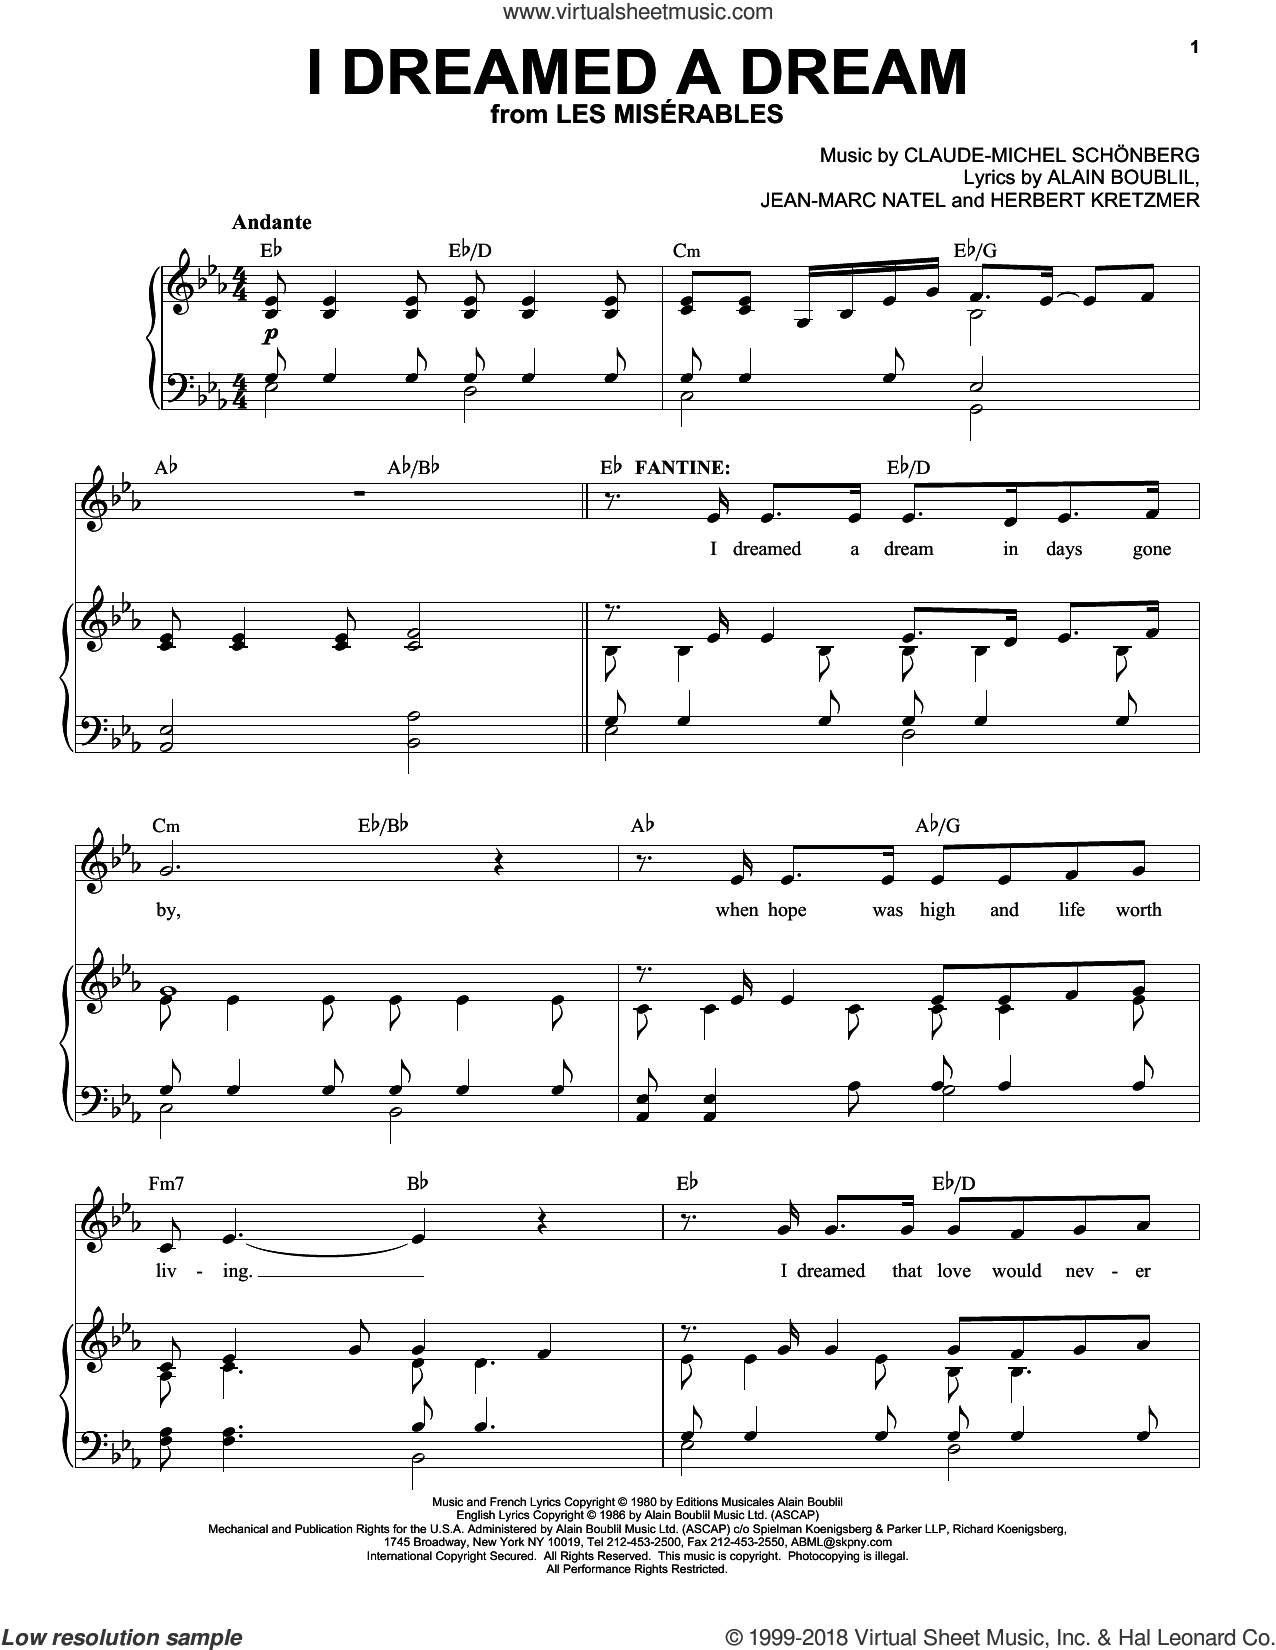 I Dreamed A Dream sheet music for voice and piano (High Voice) by Alain Boublil, Susan Boyle, Claude-Michel Schonberg, Herbert Kretzmer and Jean-Marc Natel, intermediate skill level